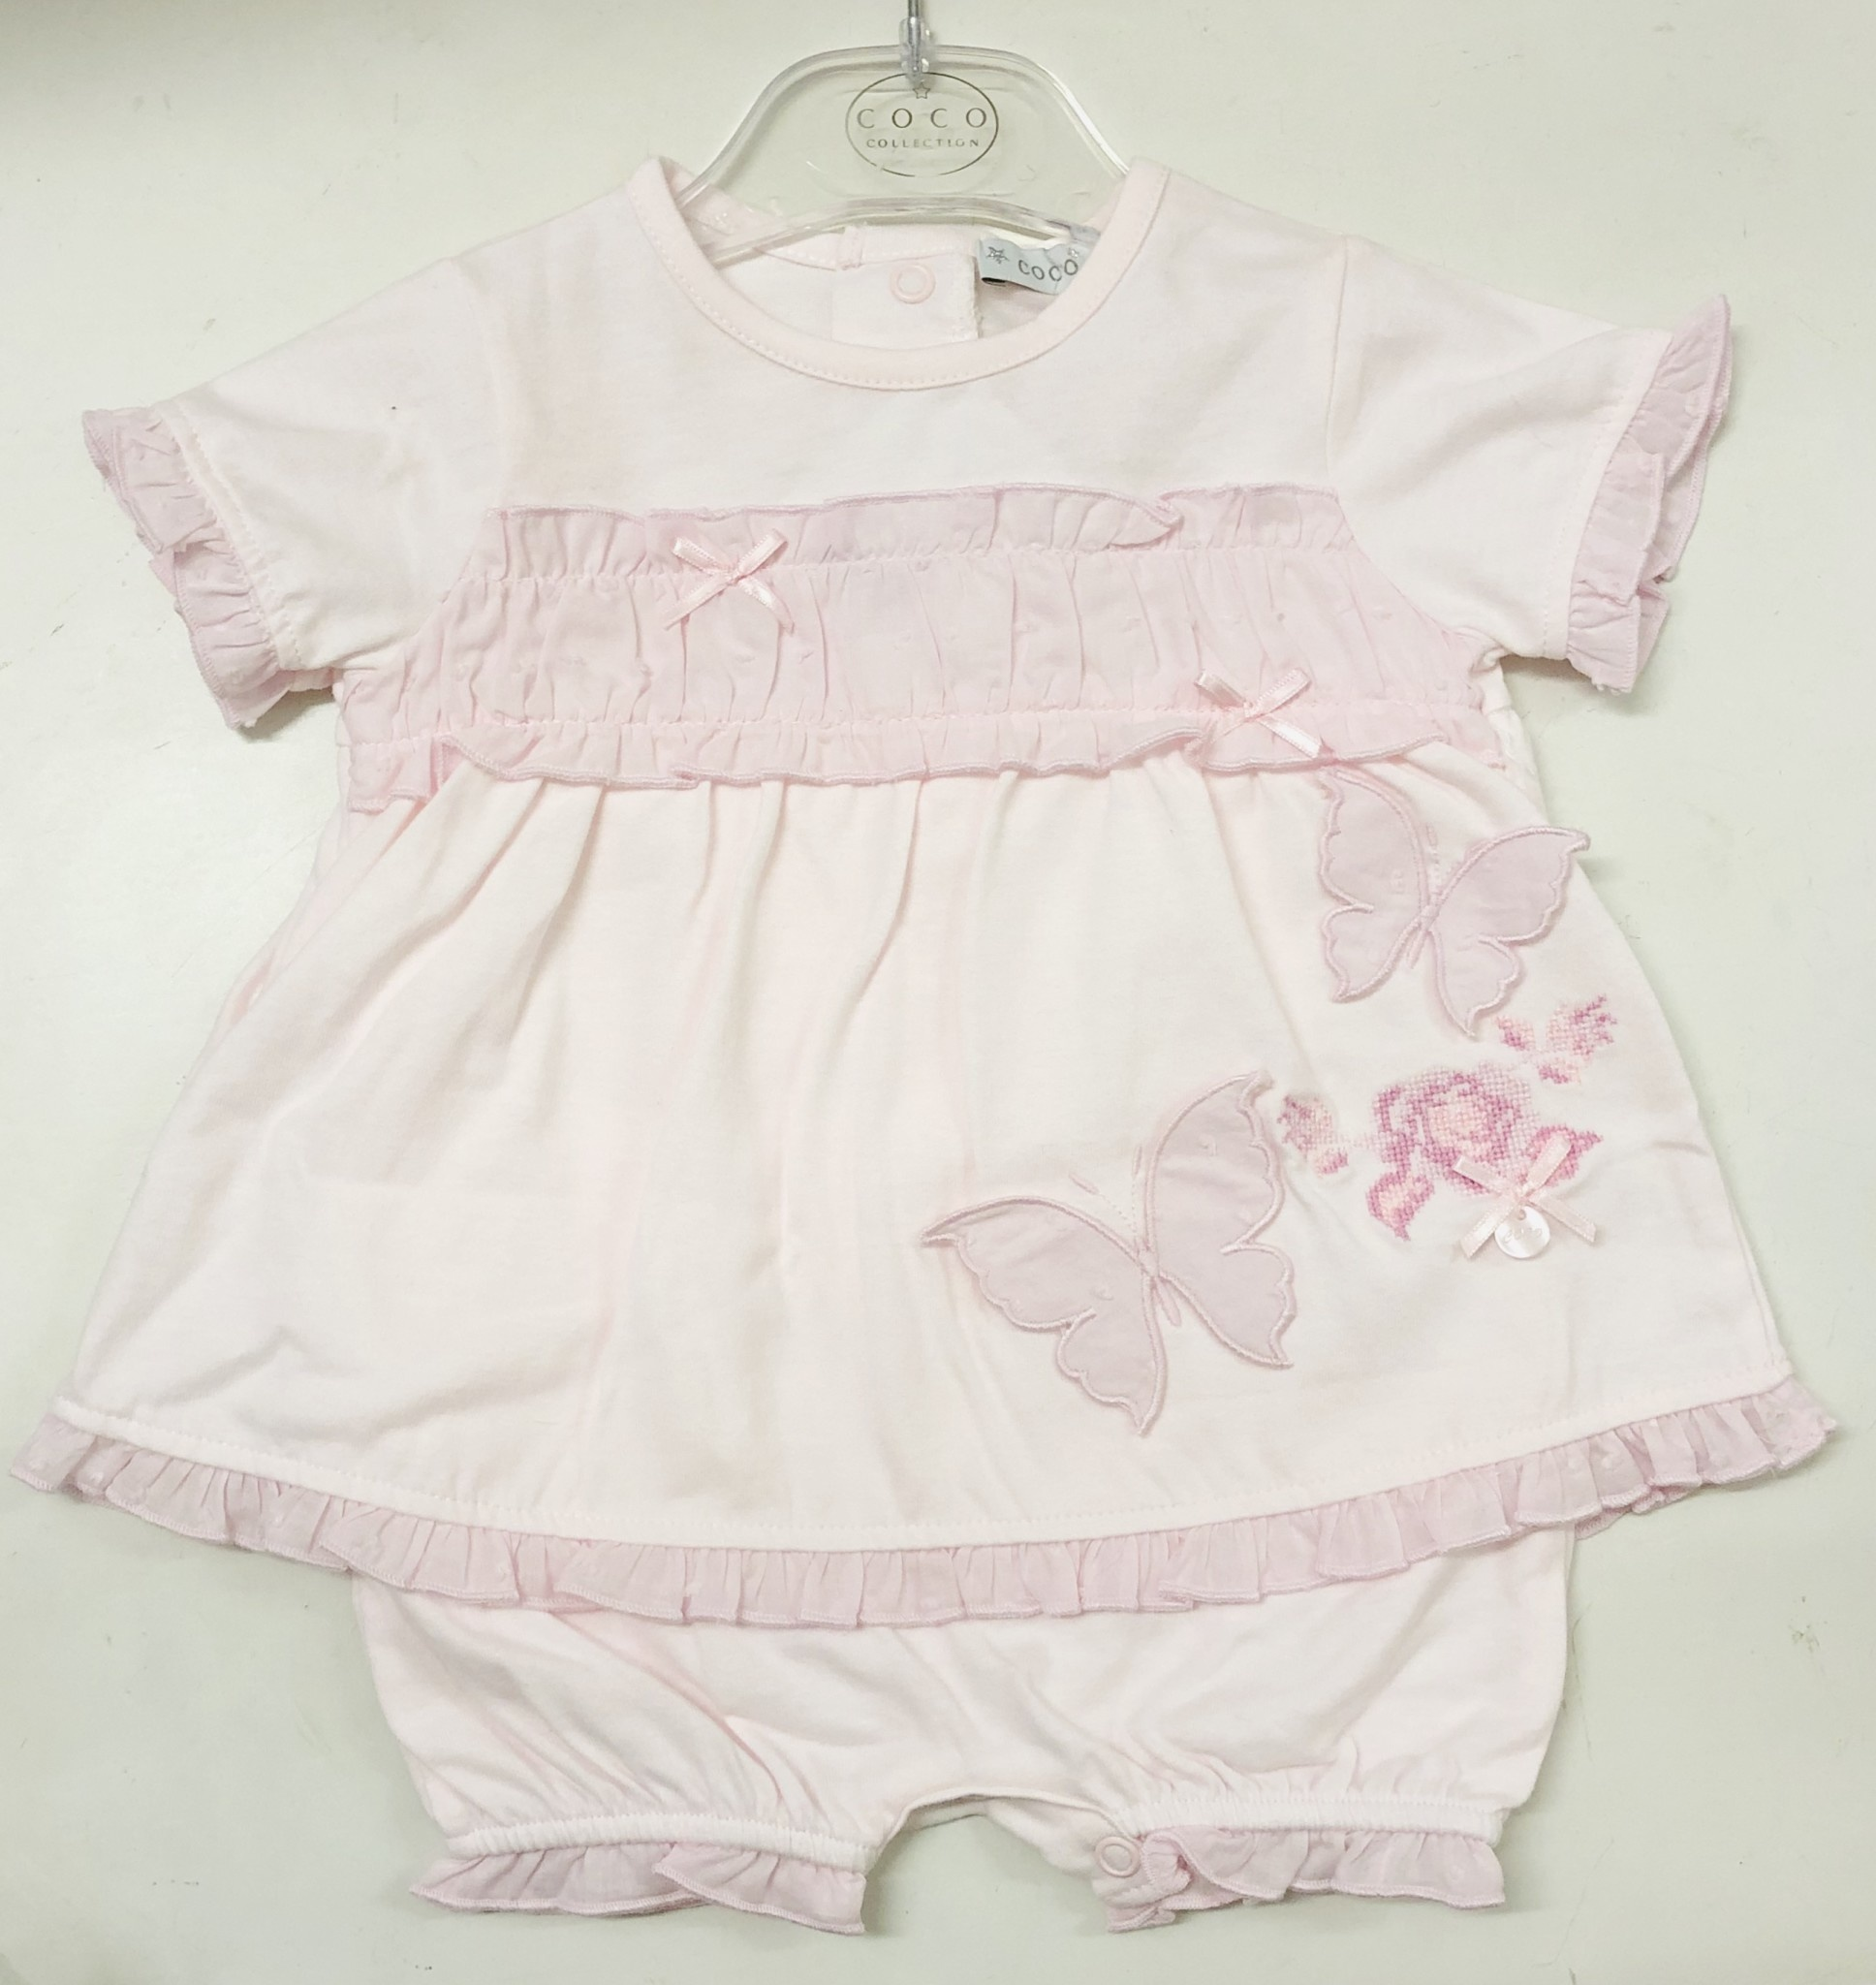 Coco Collection COCO Collection CCS5734 Pink Top & Frill Pant Set